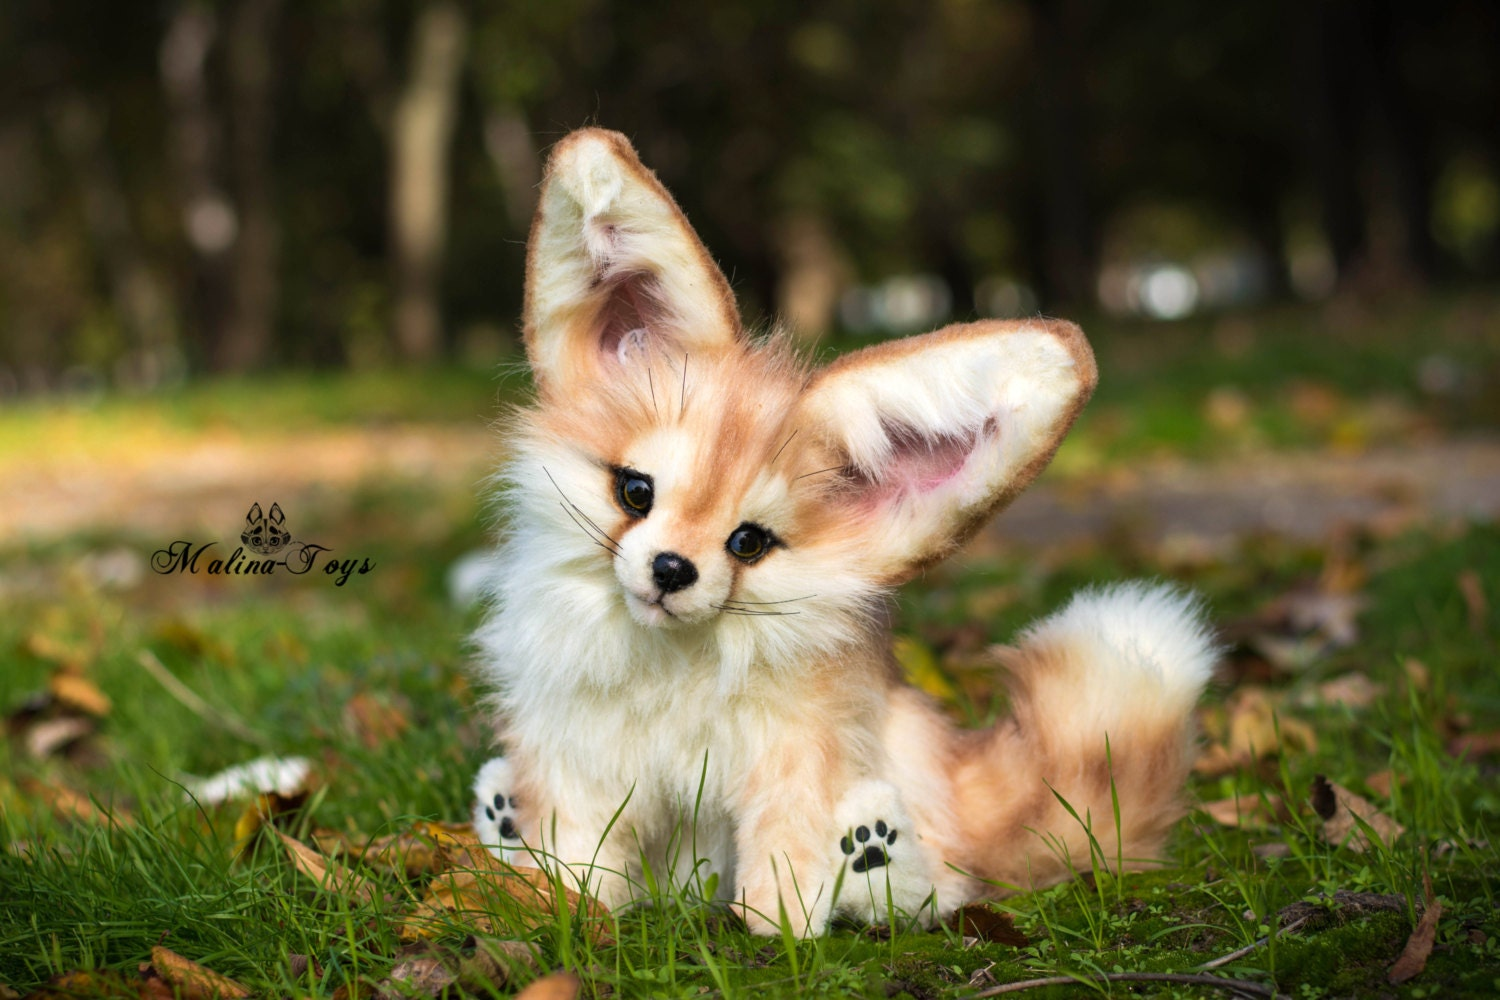 CUSTOM ORDERHandmade Poseable toy Fennec Fox.Fox plush